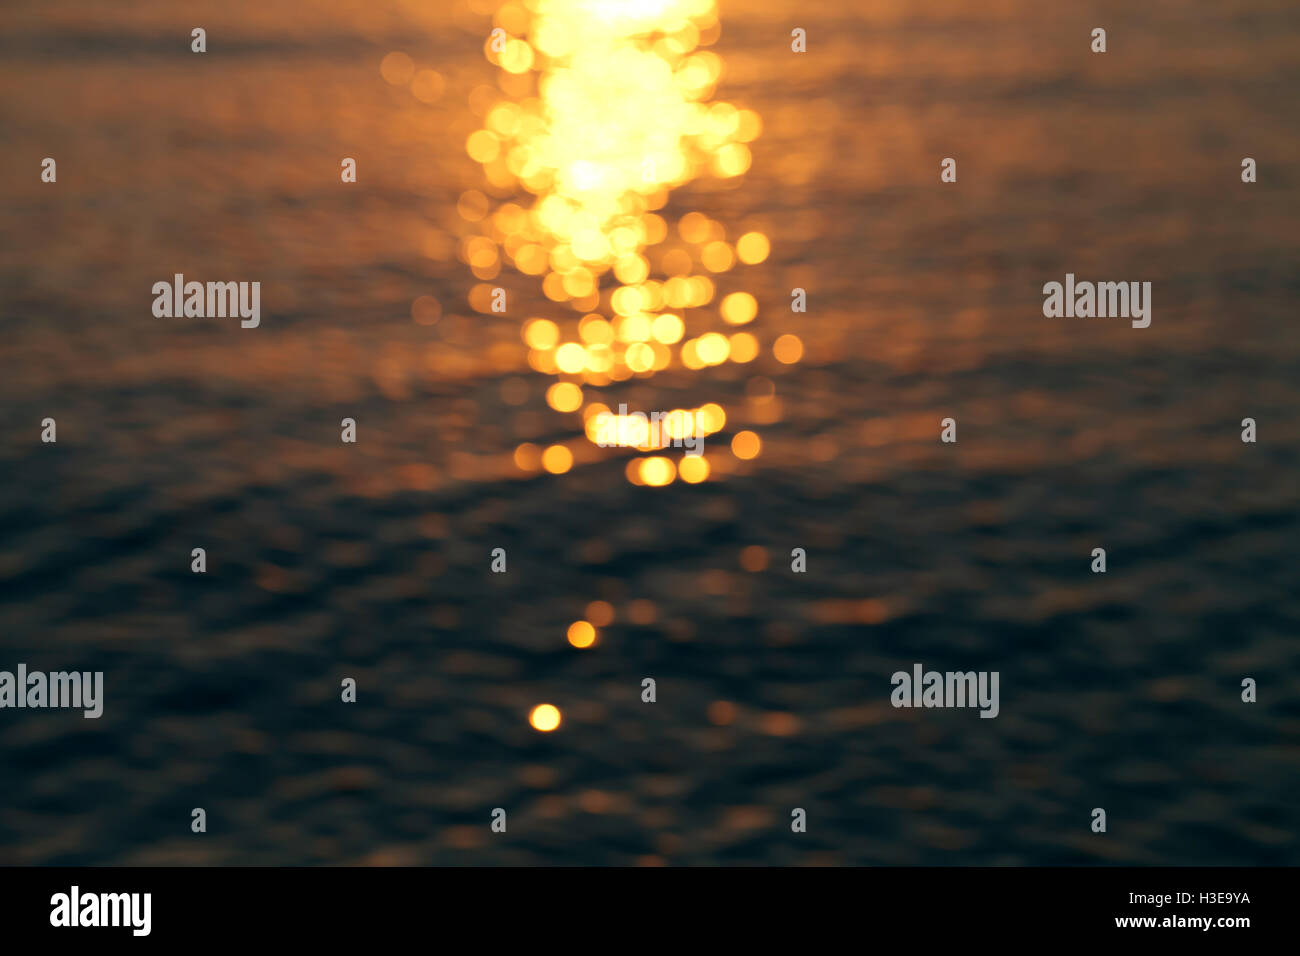 a sun glare on the water, beautiful background Stock Photo